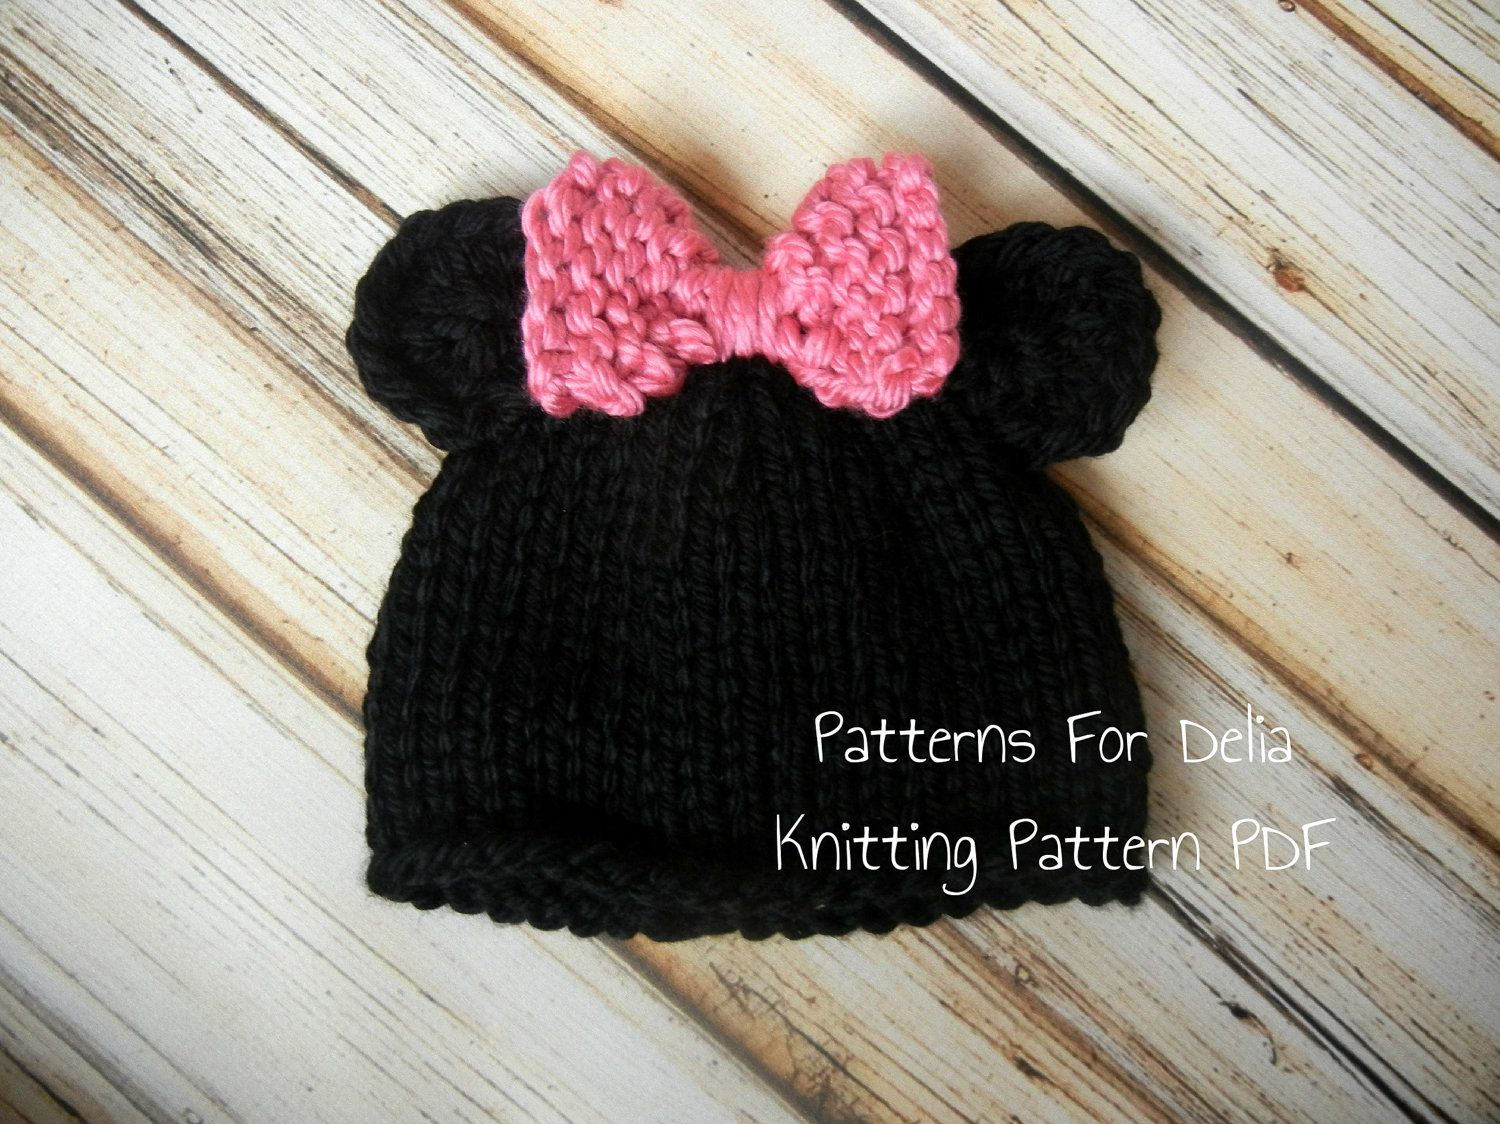 7d6a8bb06b3 Minnie Mickey Mouse Hat KNITTING PATTERN easy beginner teddy bear baby  infant toddler child photography prop beanie.  3.95